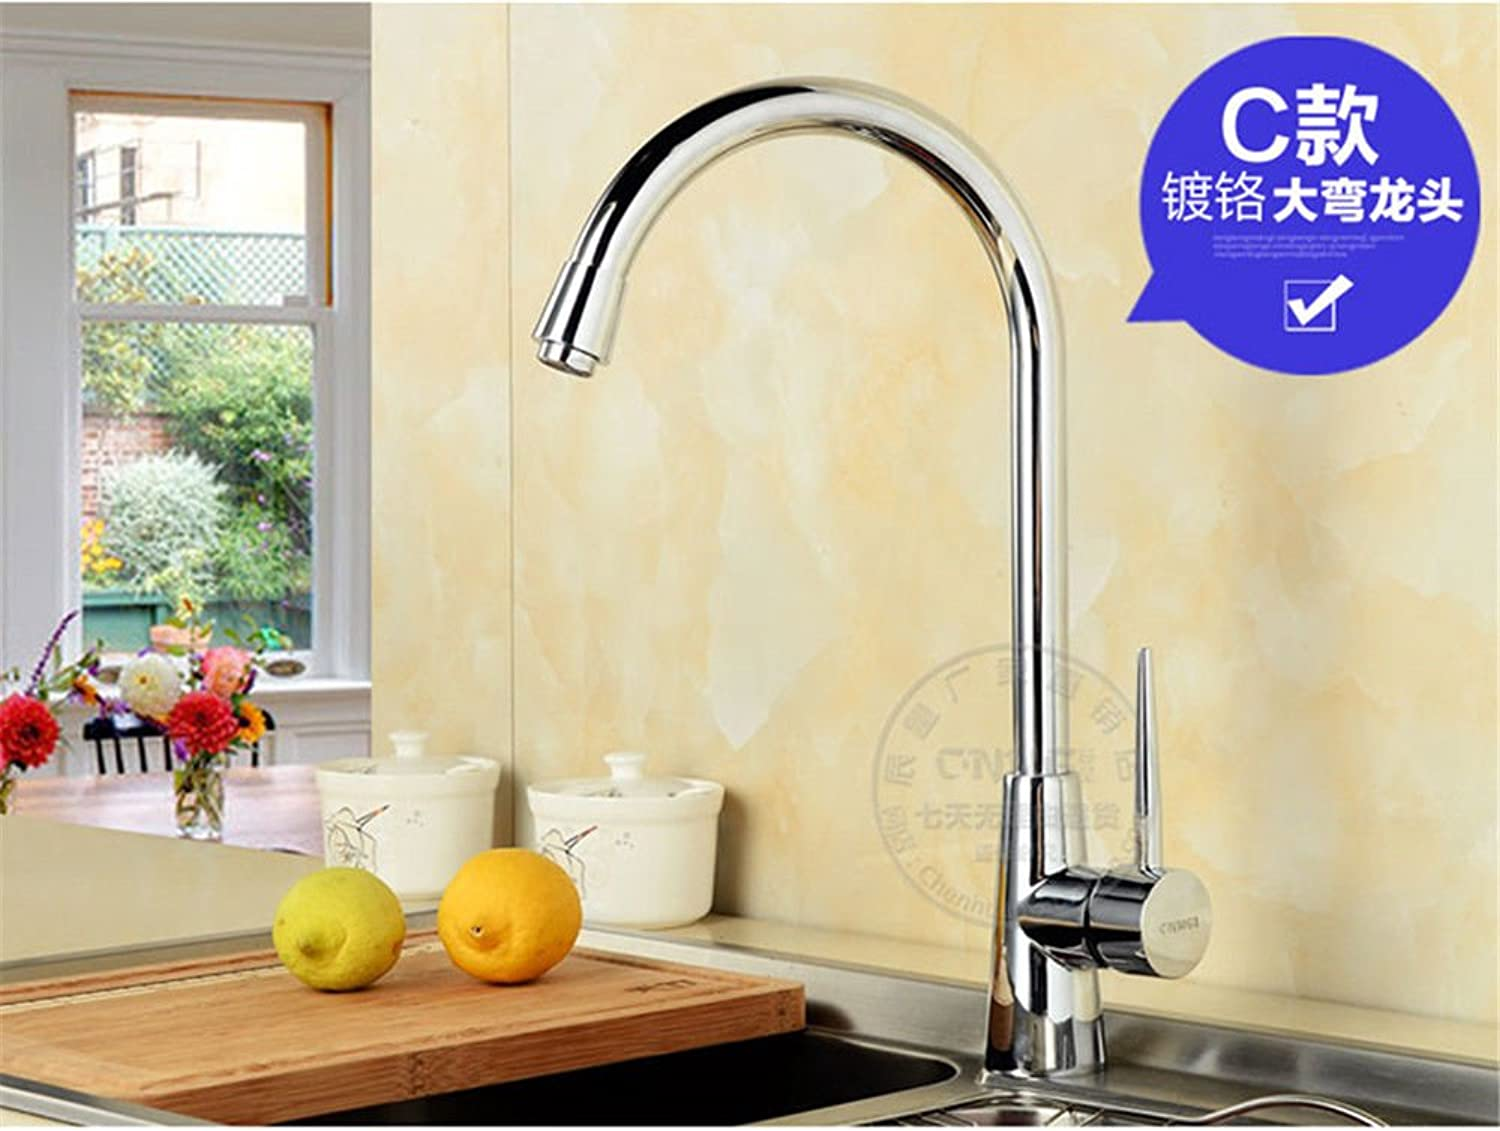 Commercial Single Lever Pull Down Kitchen Sink Faucet Brass Constructed Polished Kitchen Sink, Above Counter Basin, Stainless Steel Sink, Universal redating, Hot and Cold Copper Faucet [80Cm Hose]